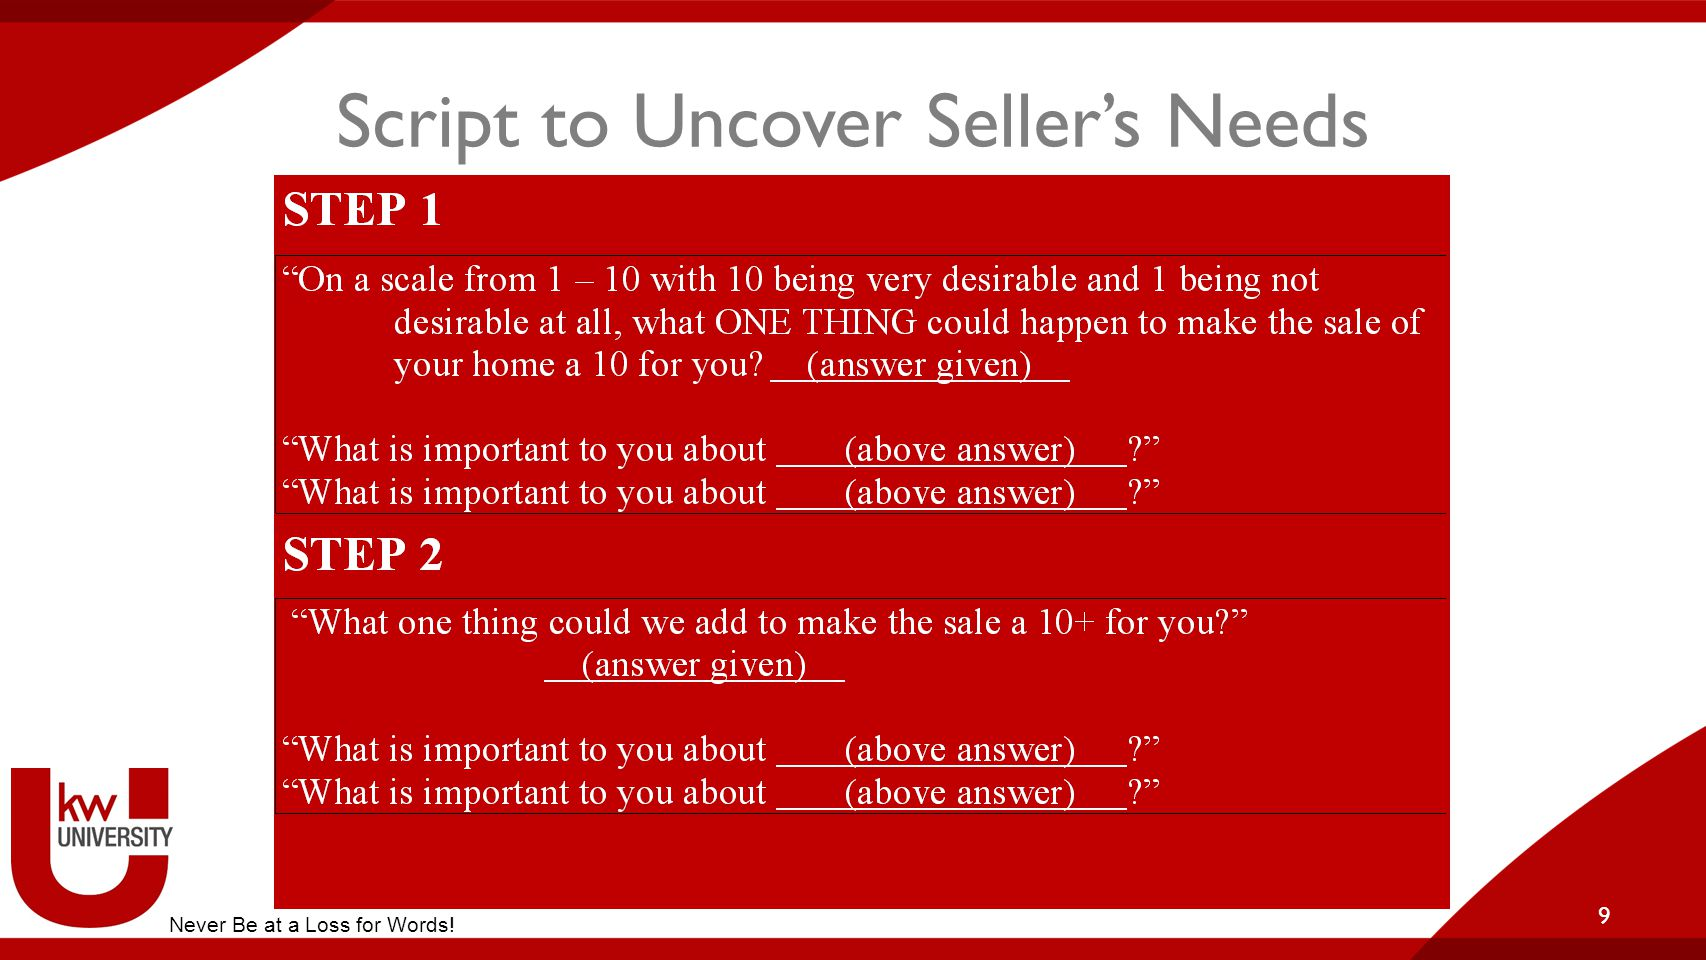 Script to Uncover Seller's Needs